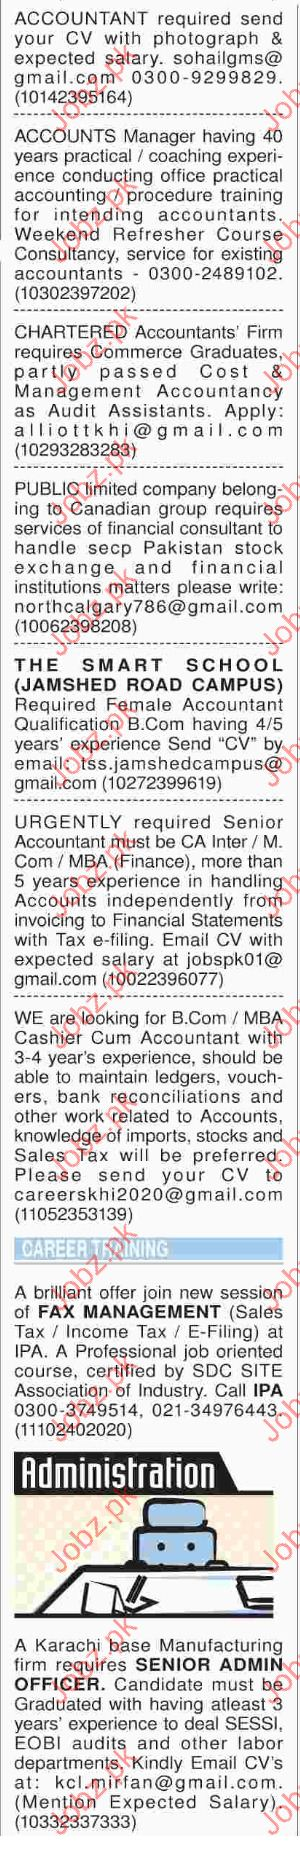 Female Accountant Required in The Smart School